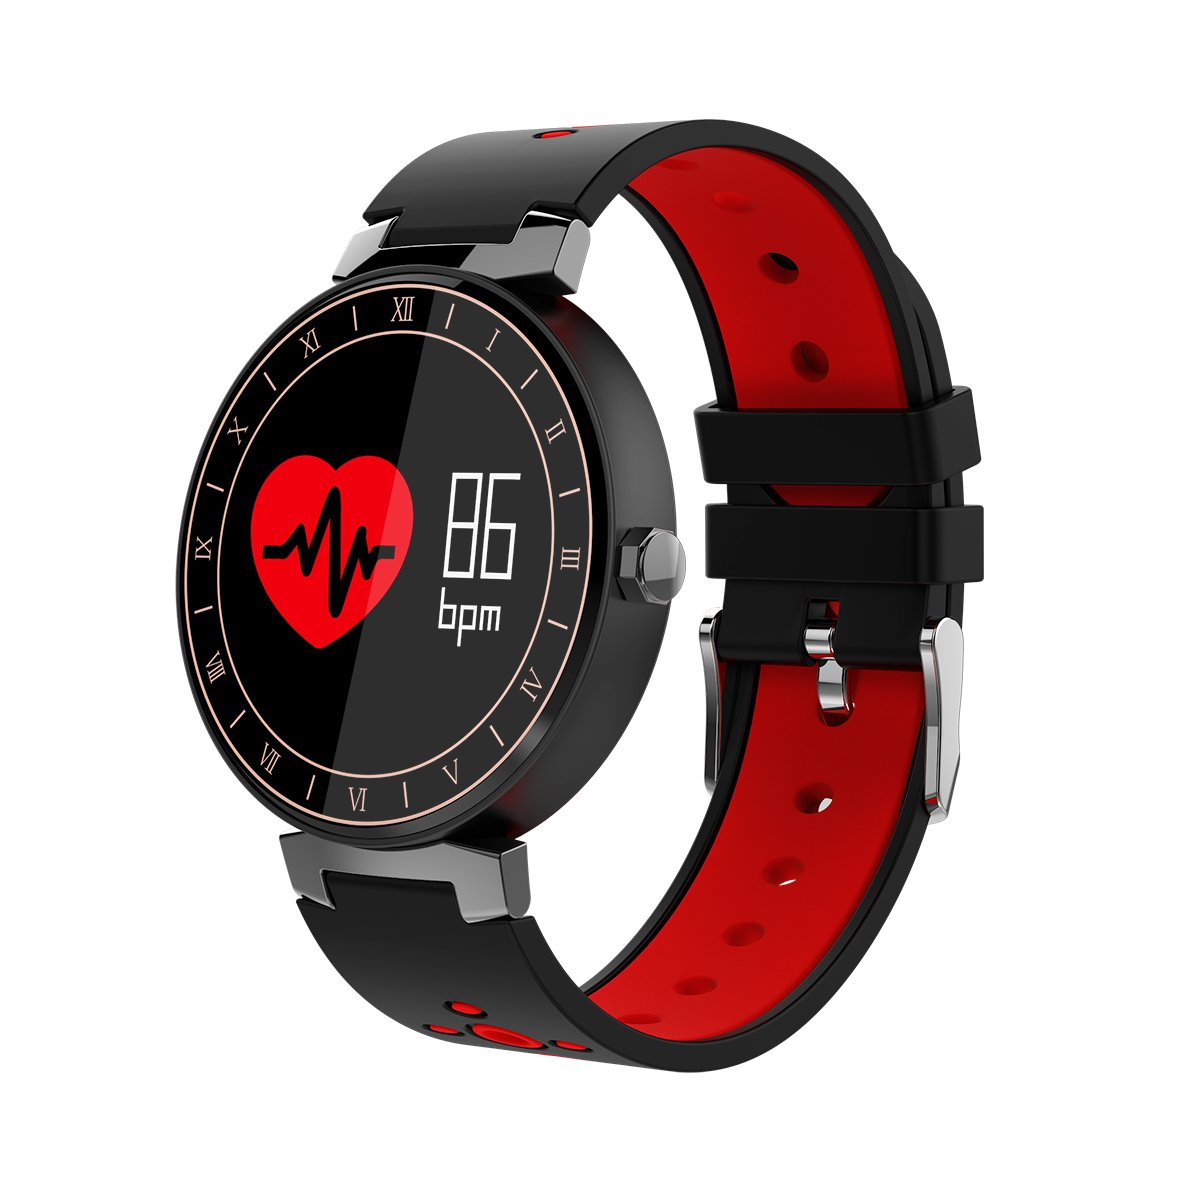 ISTYLE L8 Smart Bracelet Sport Color Screen IP68 Waterproof Smart Band Heart Rate Monitor Fitness Tracker Blood Pressure Wristband For Android IOS Smartphone (Red)